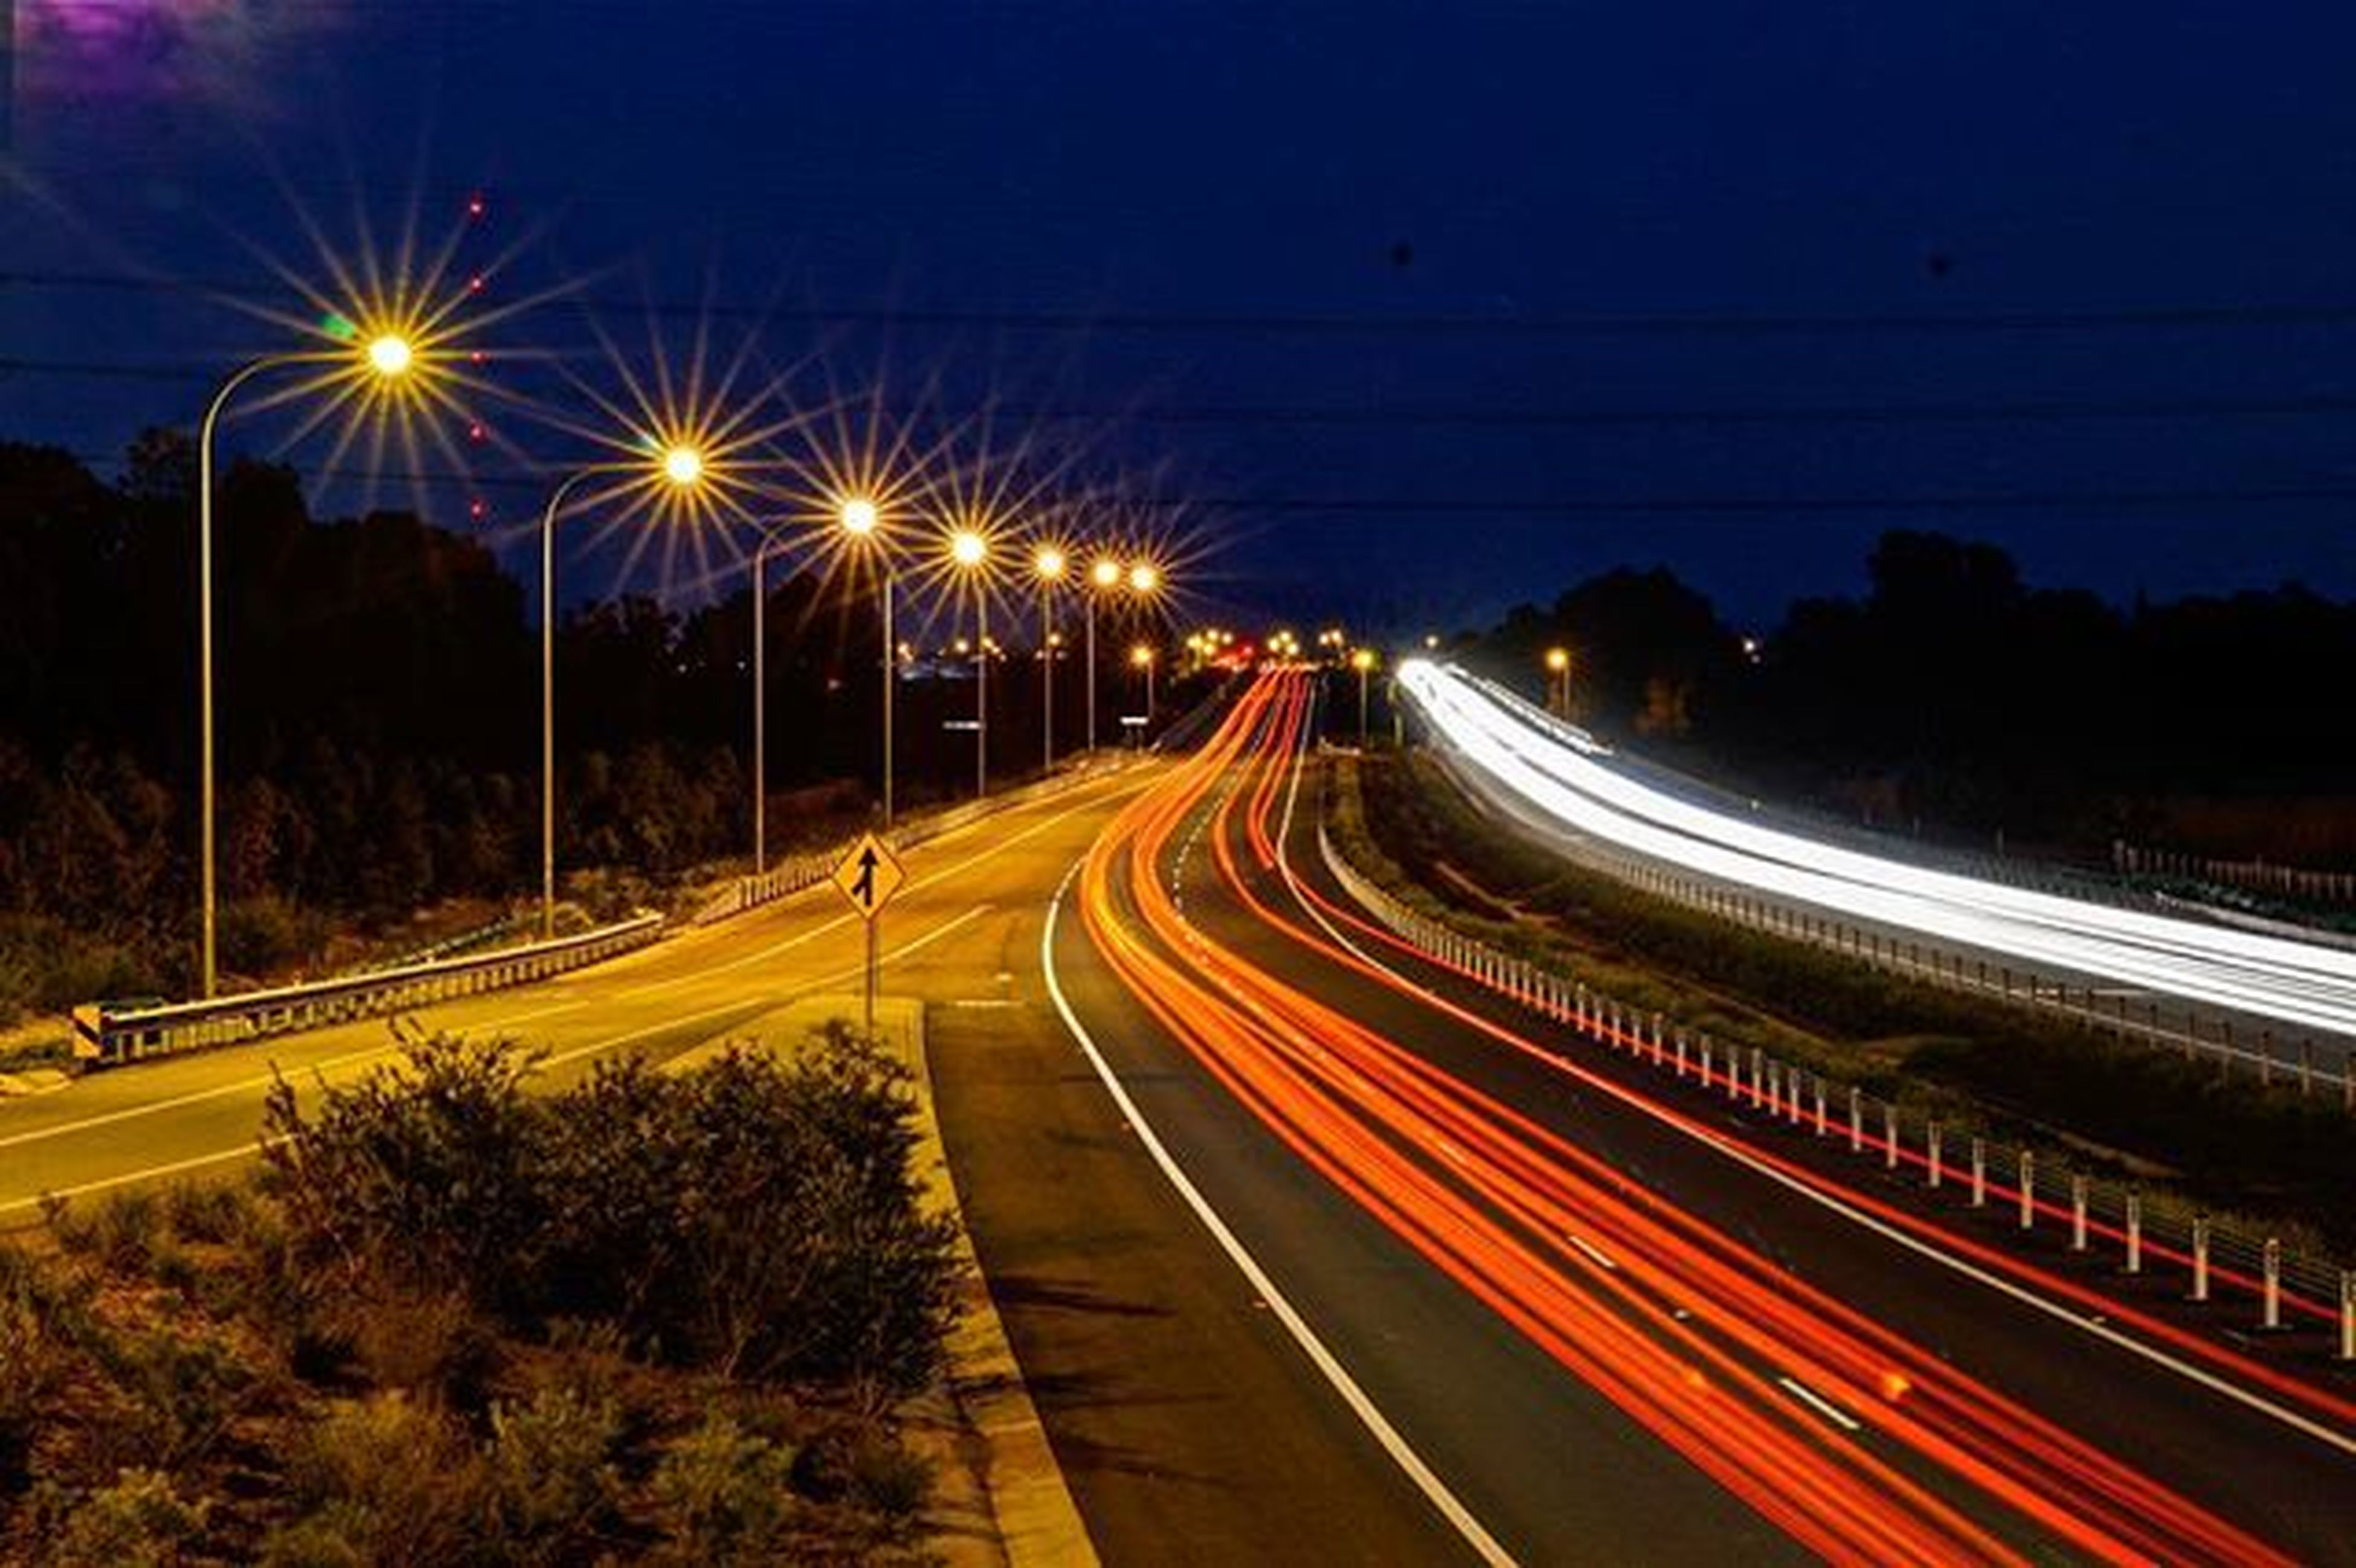 illuminated, light trail, long exposure, night, transportation, speed, motion, blurred motion, road, traffic, street light, city, high angle view, street, highway, on the move, railroad track, sky, the way forward, tail light